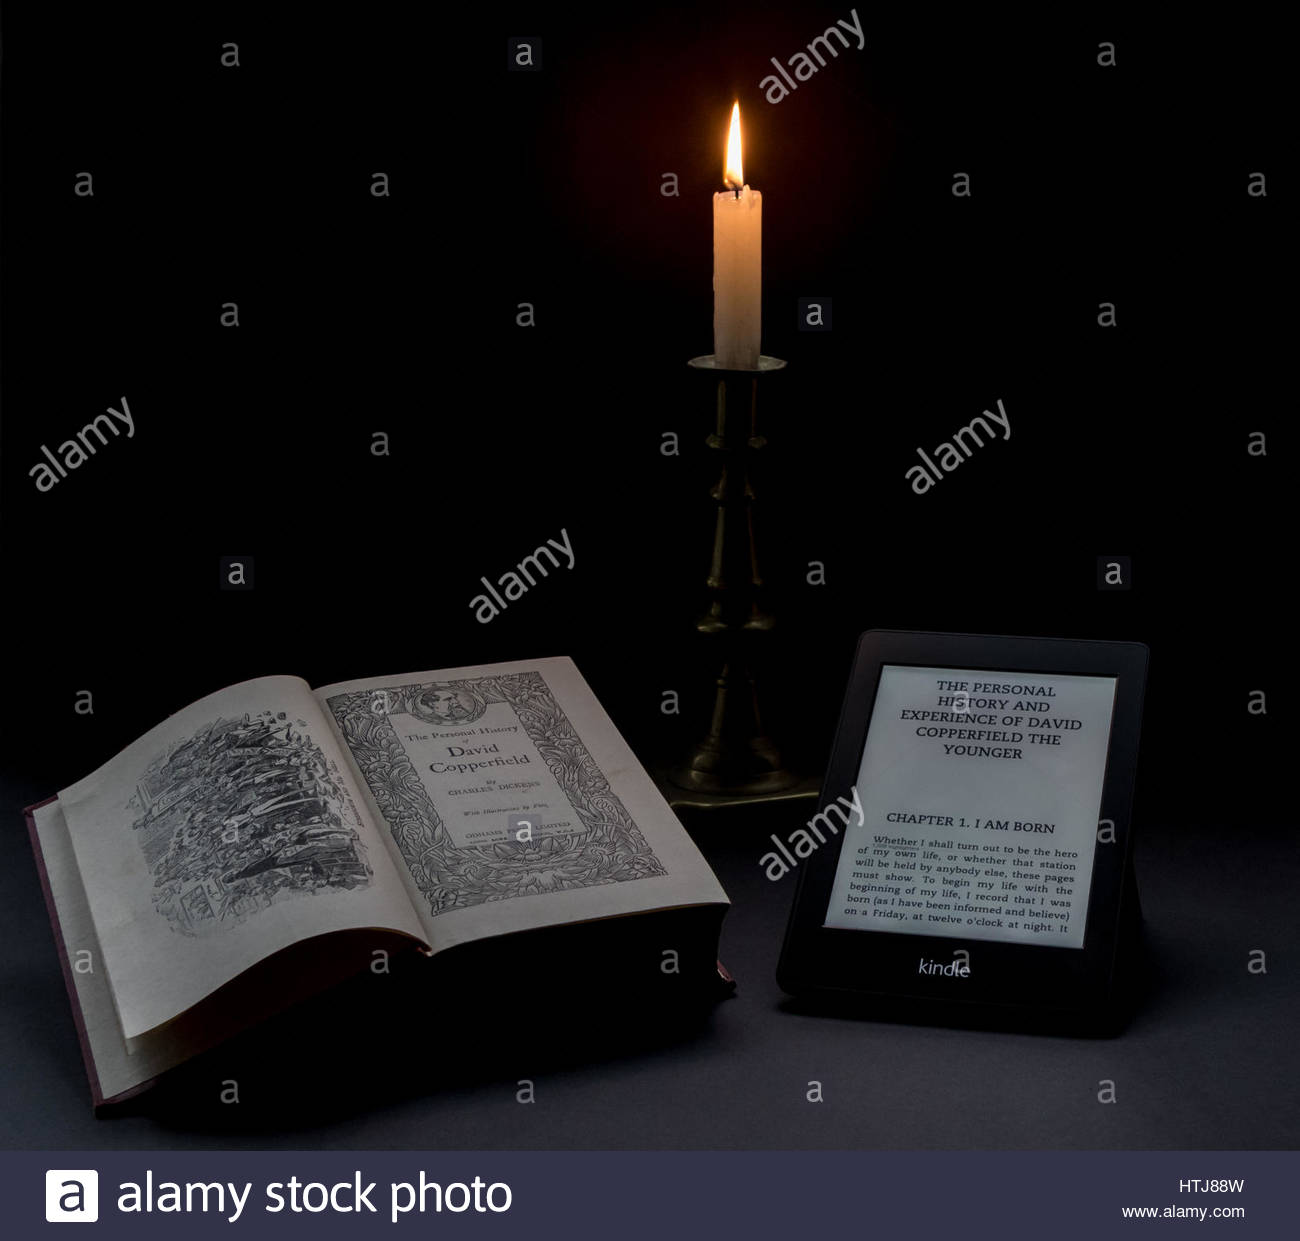 New vs Old, the same Dickens novel on a Kindle and in Hardback illuminated by a candle against a black background. Stock Photo